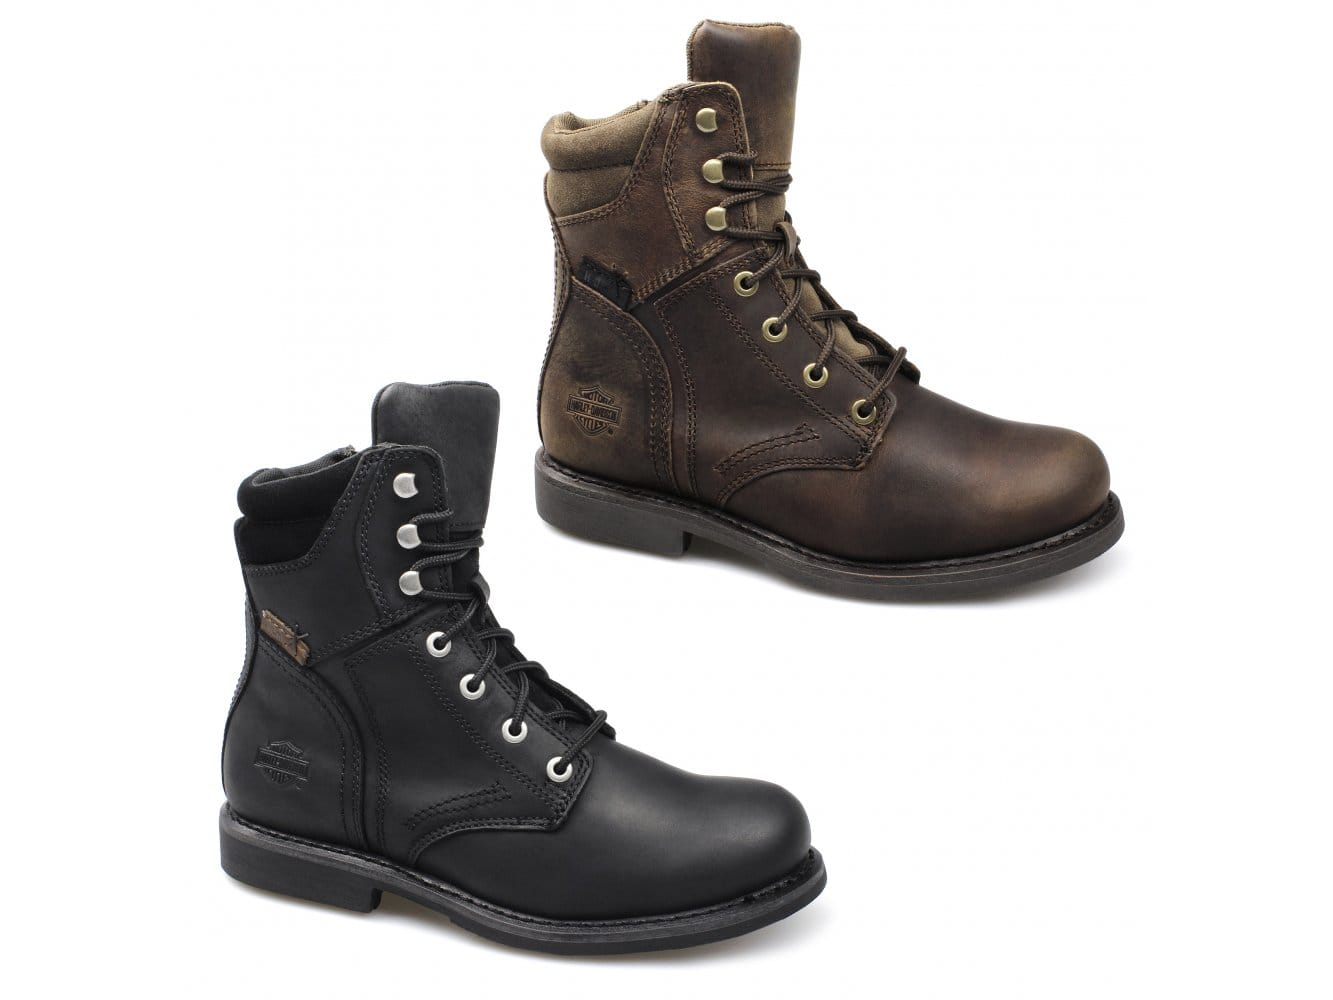 Harley Davidson DARNEL Mens Leather Suede Lace Up Zip Casual Ankle Combat Boots